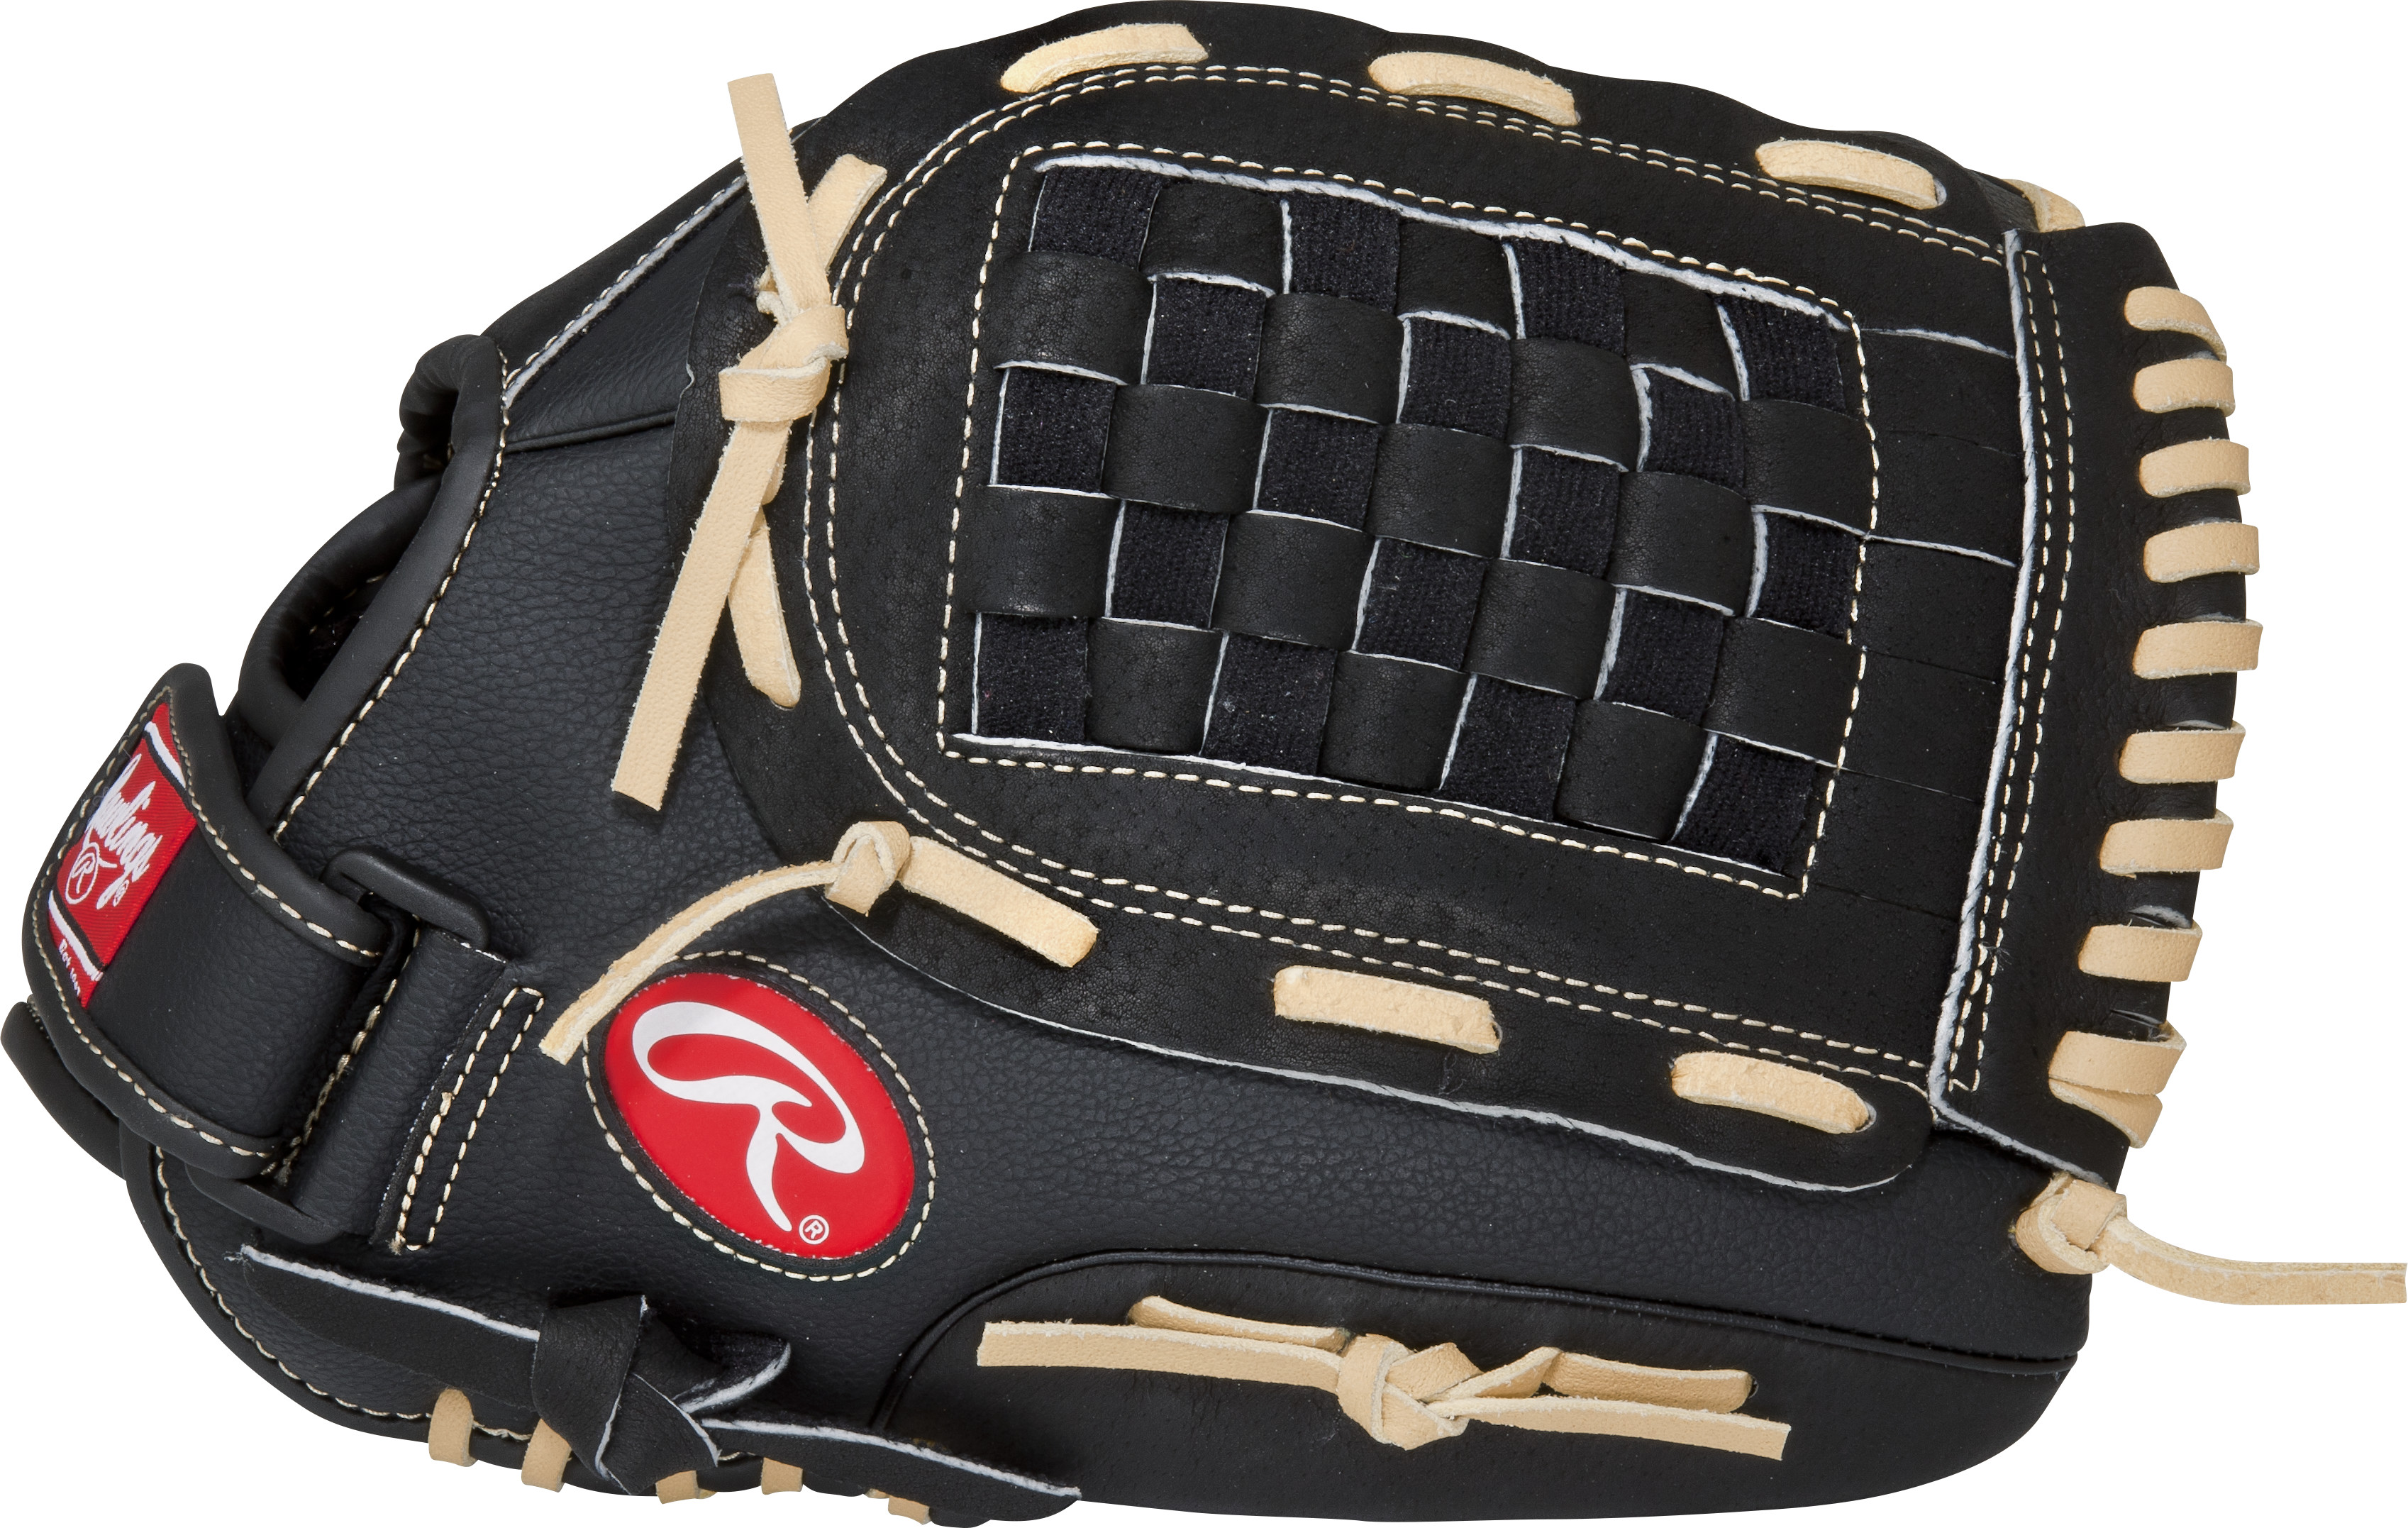 http://www.bestbatdeals.com/images/gloves/rawlings/RSS130C_thumb.jpg